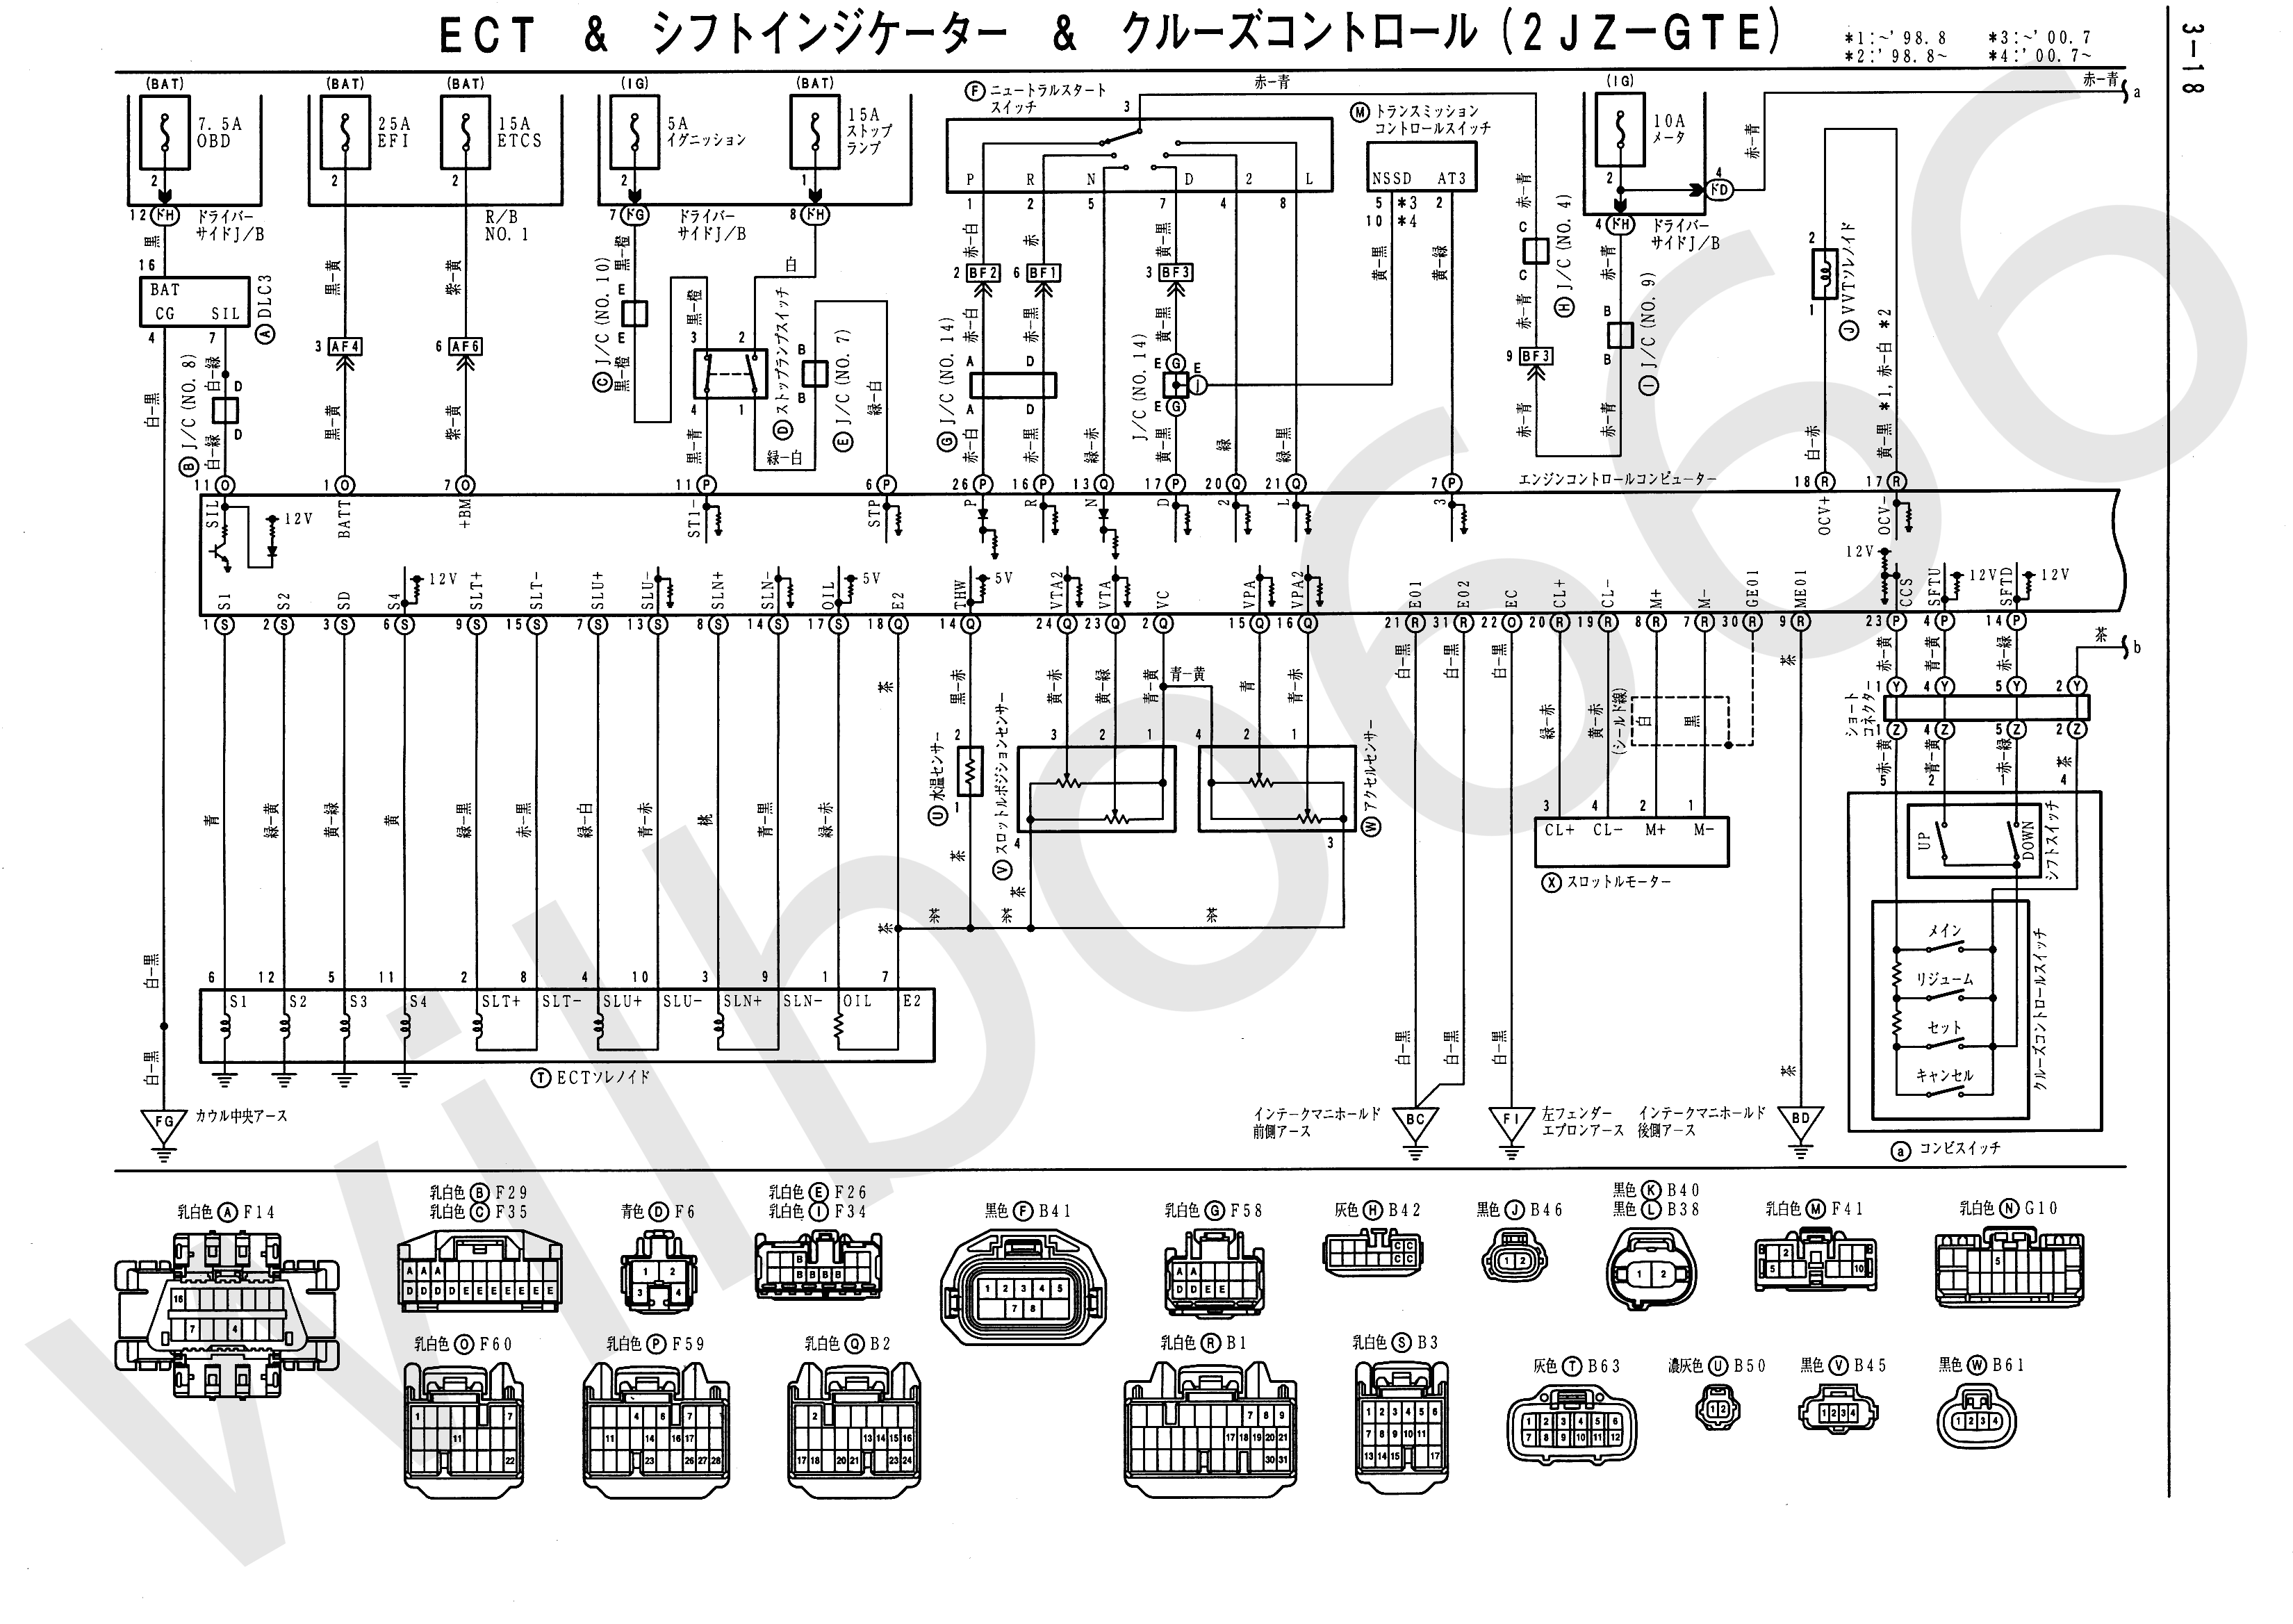 JZS161 Electrical Wiring Diagram 6748505 3 18 wilbo666 2jz gte vvti jzs161 aristo engine wiring toyota highlander ecu wiring diagram at eliteediting.co